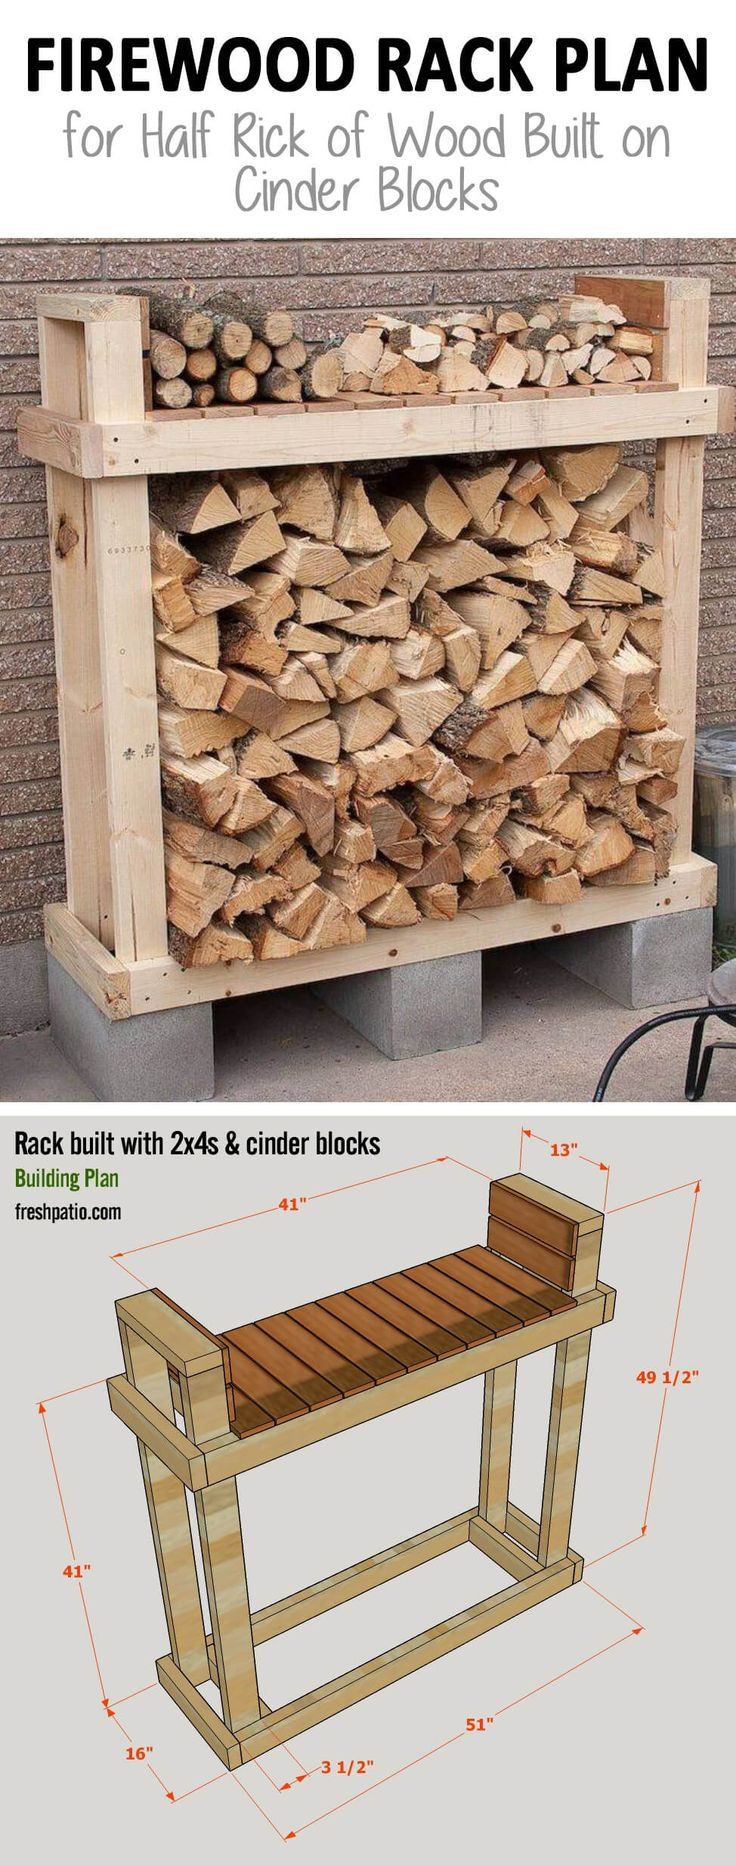 15 Easy DIY Outdoor Firewood Rack Ideas to Keep Your Wood Dry